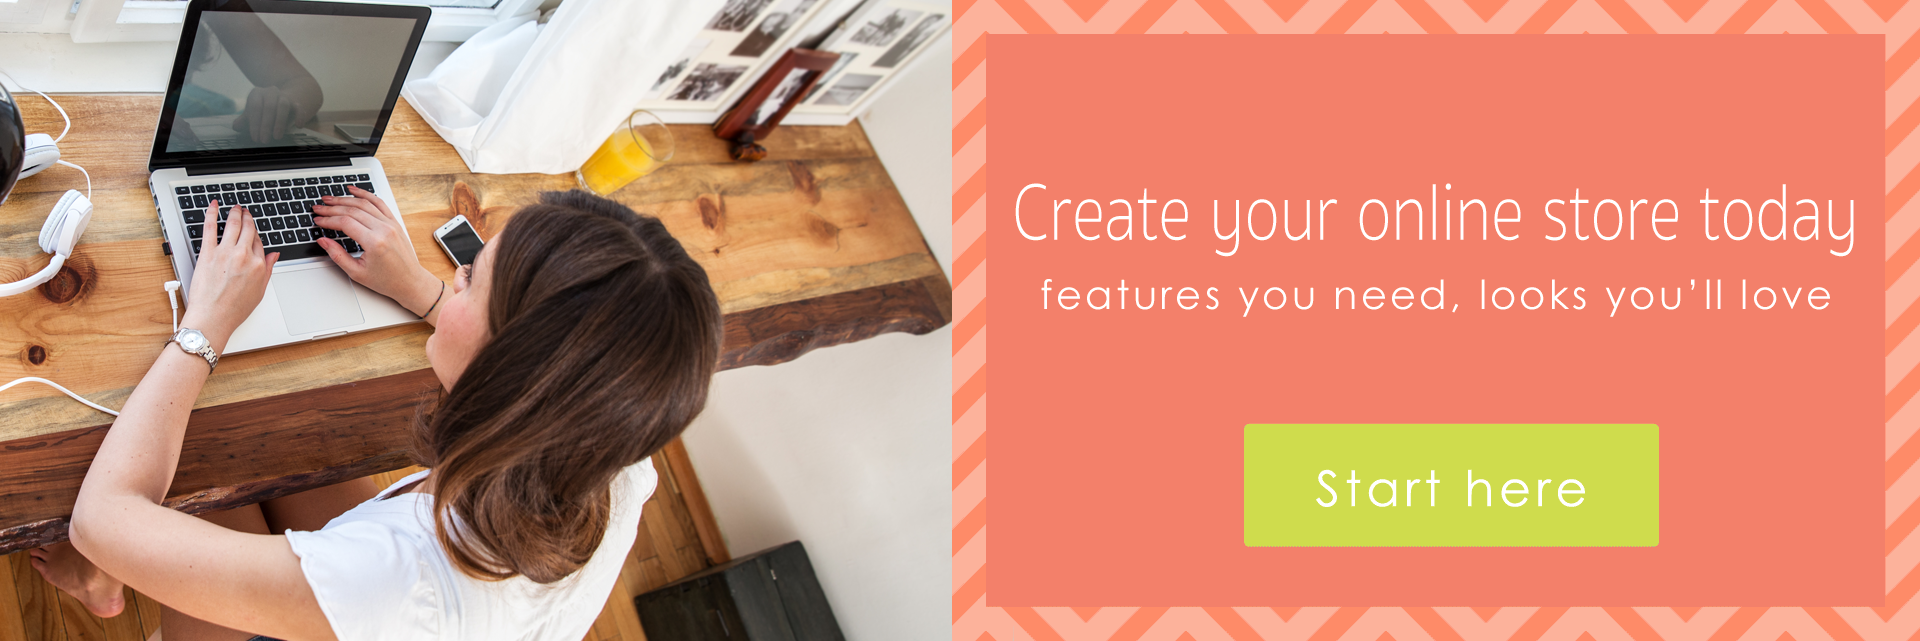 Create your online store today